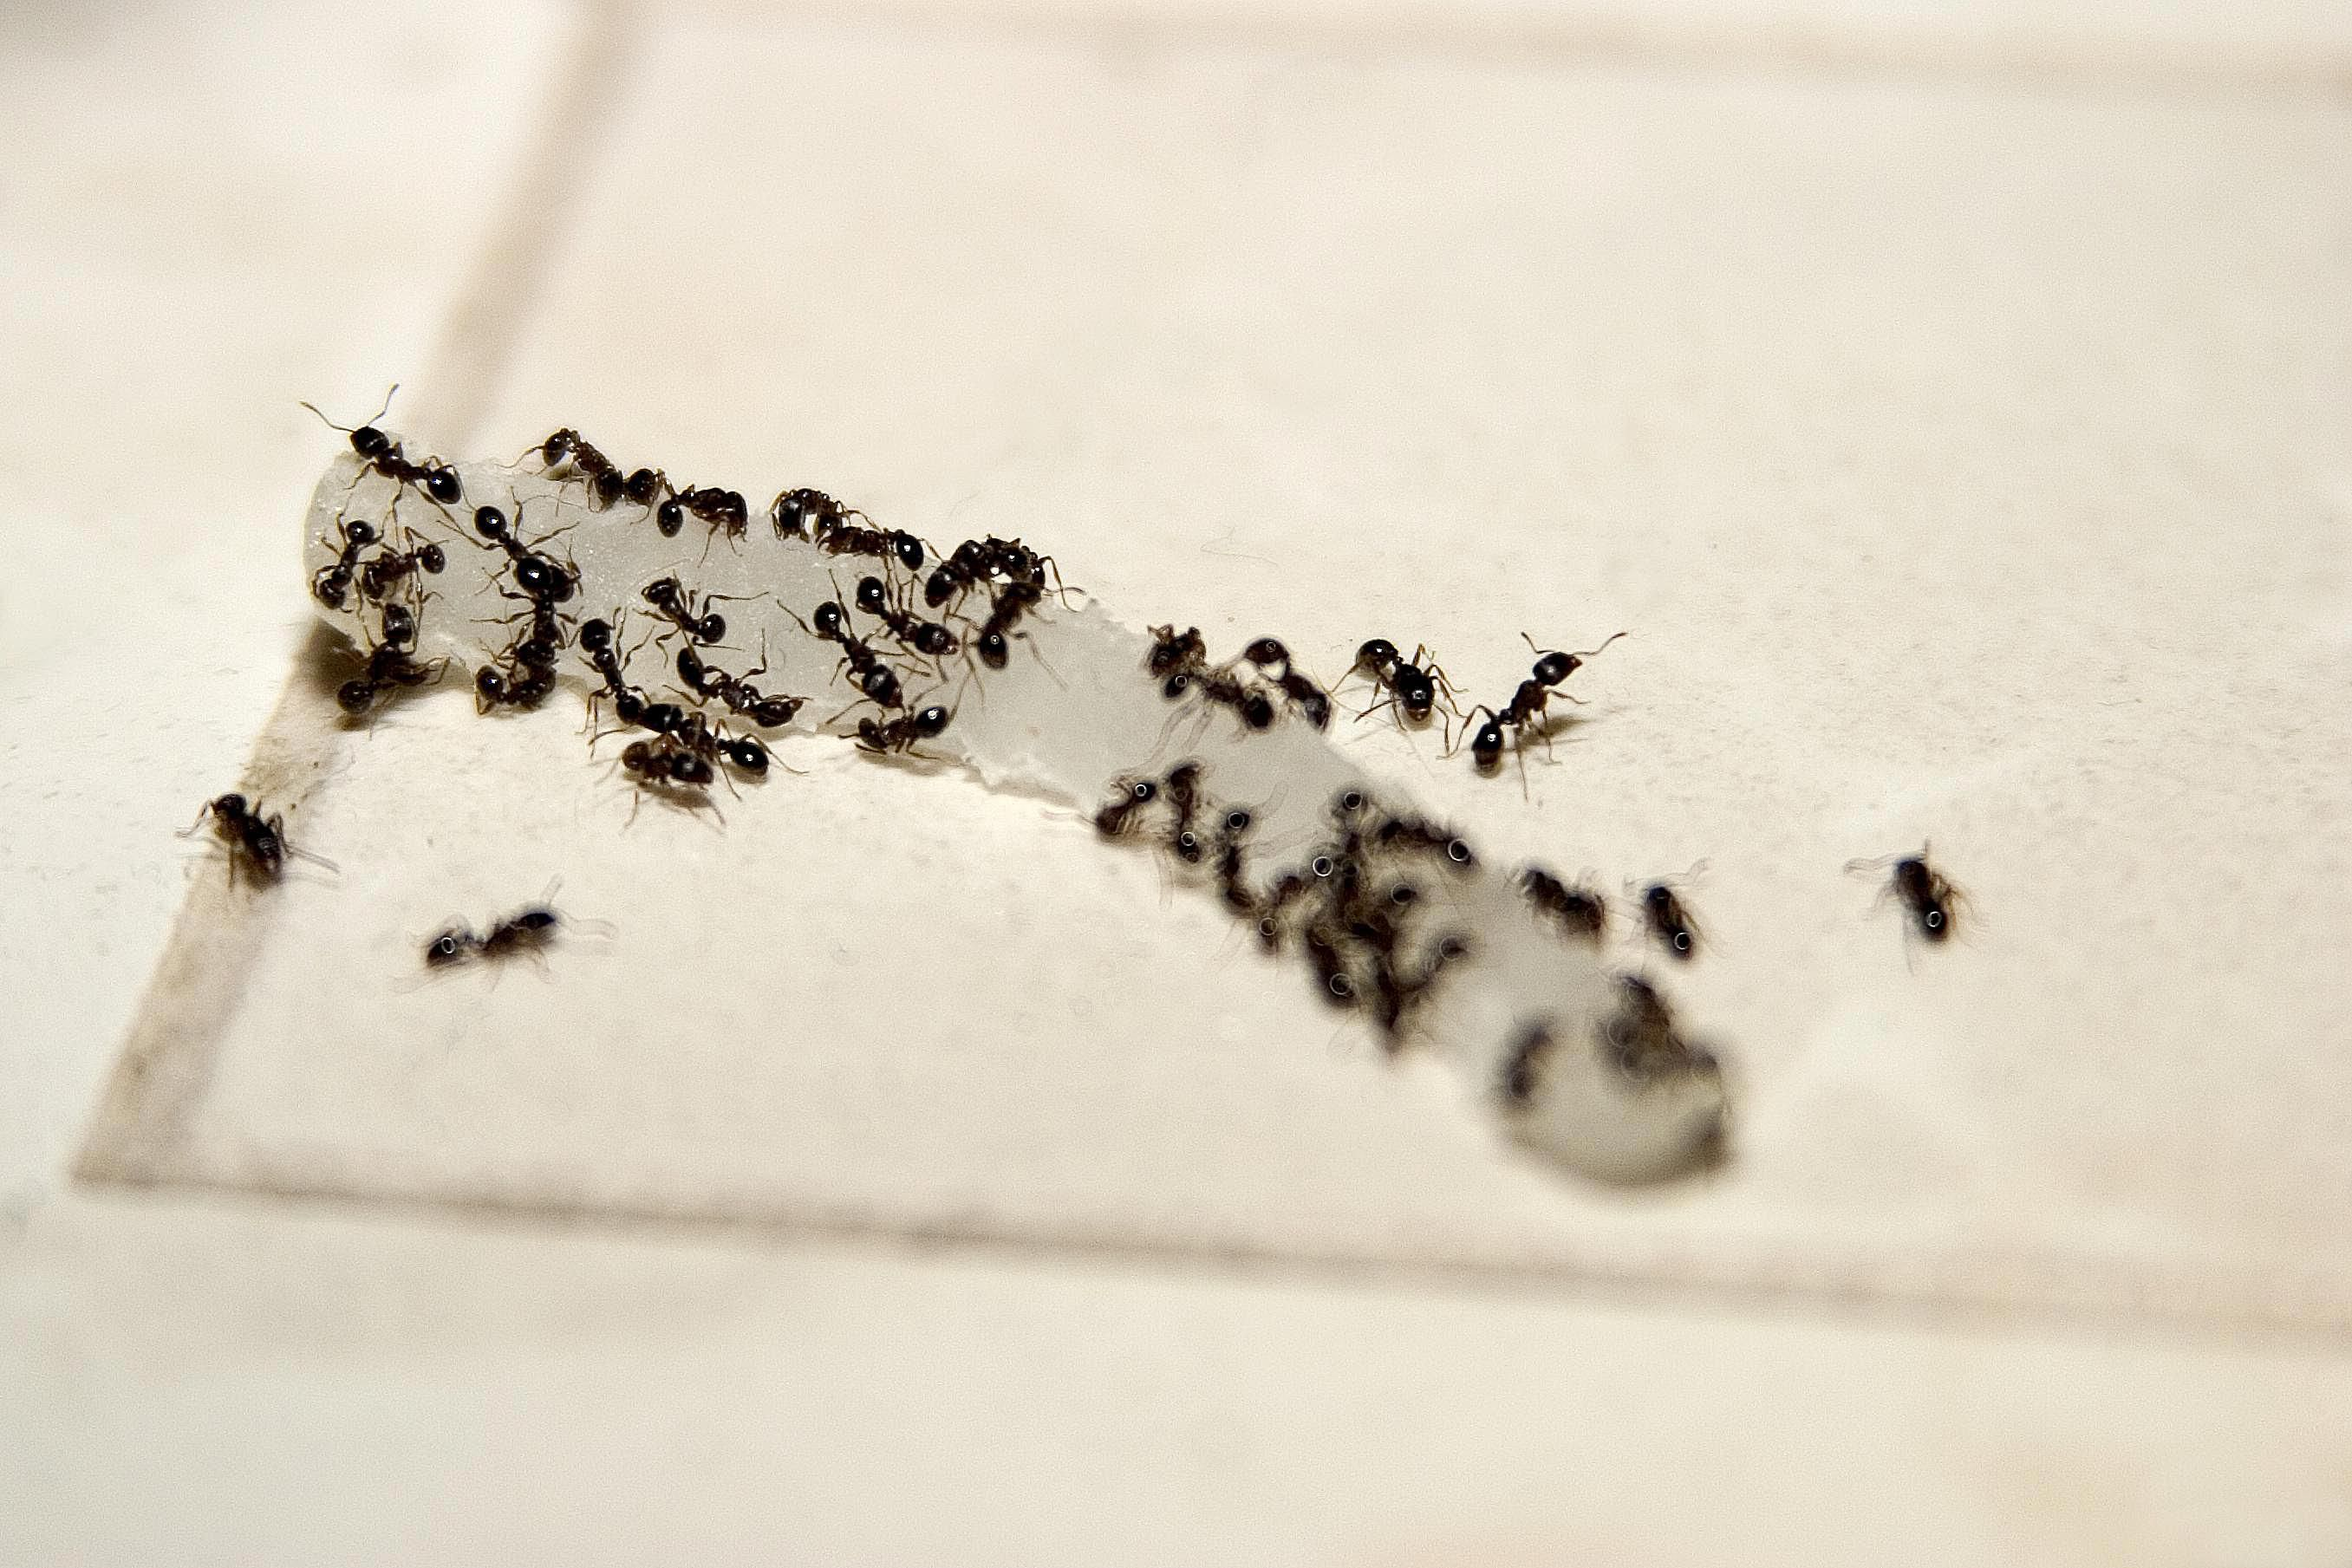 How to Get Rid of Stinky Odorous House Ants. What to Do About Flying Ants in Your Home